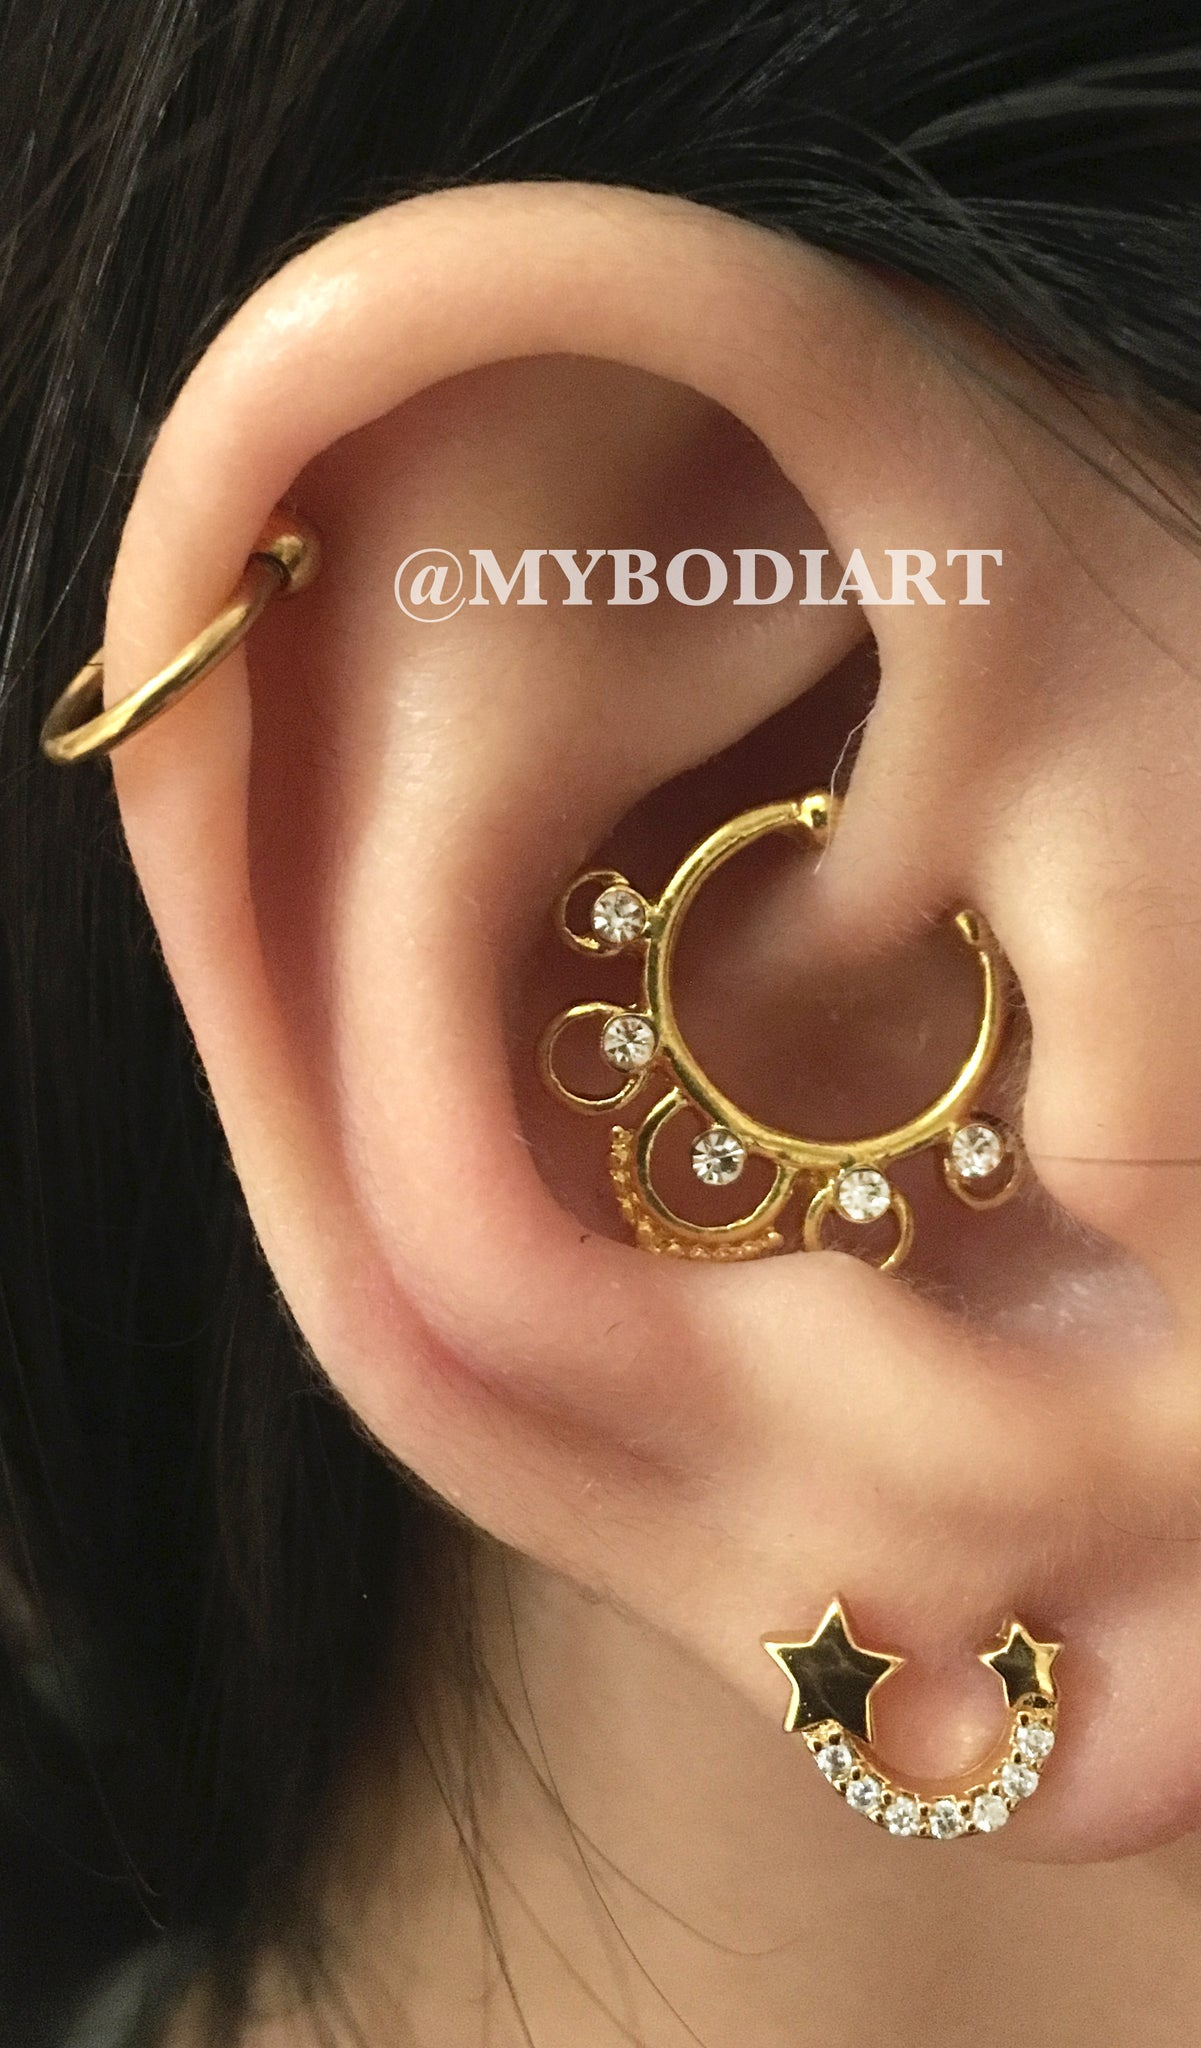 Multiple Ear Piercing Ideas - Single Gold Cartilage Ring - Rook Daith Hoop - Star Crystal Earring Lobe Stud - www.MyBodiArt.com